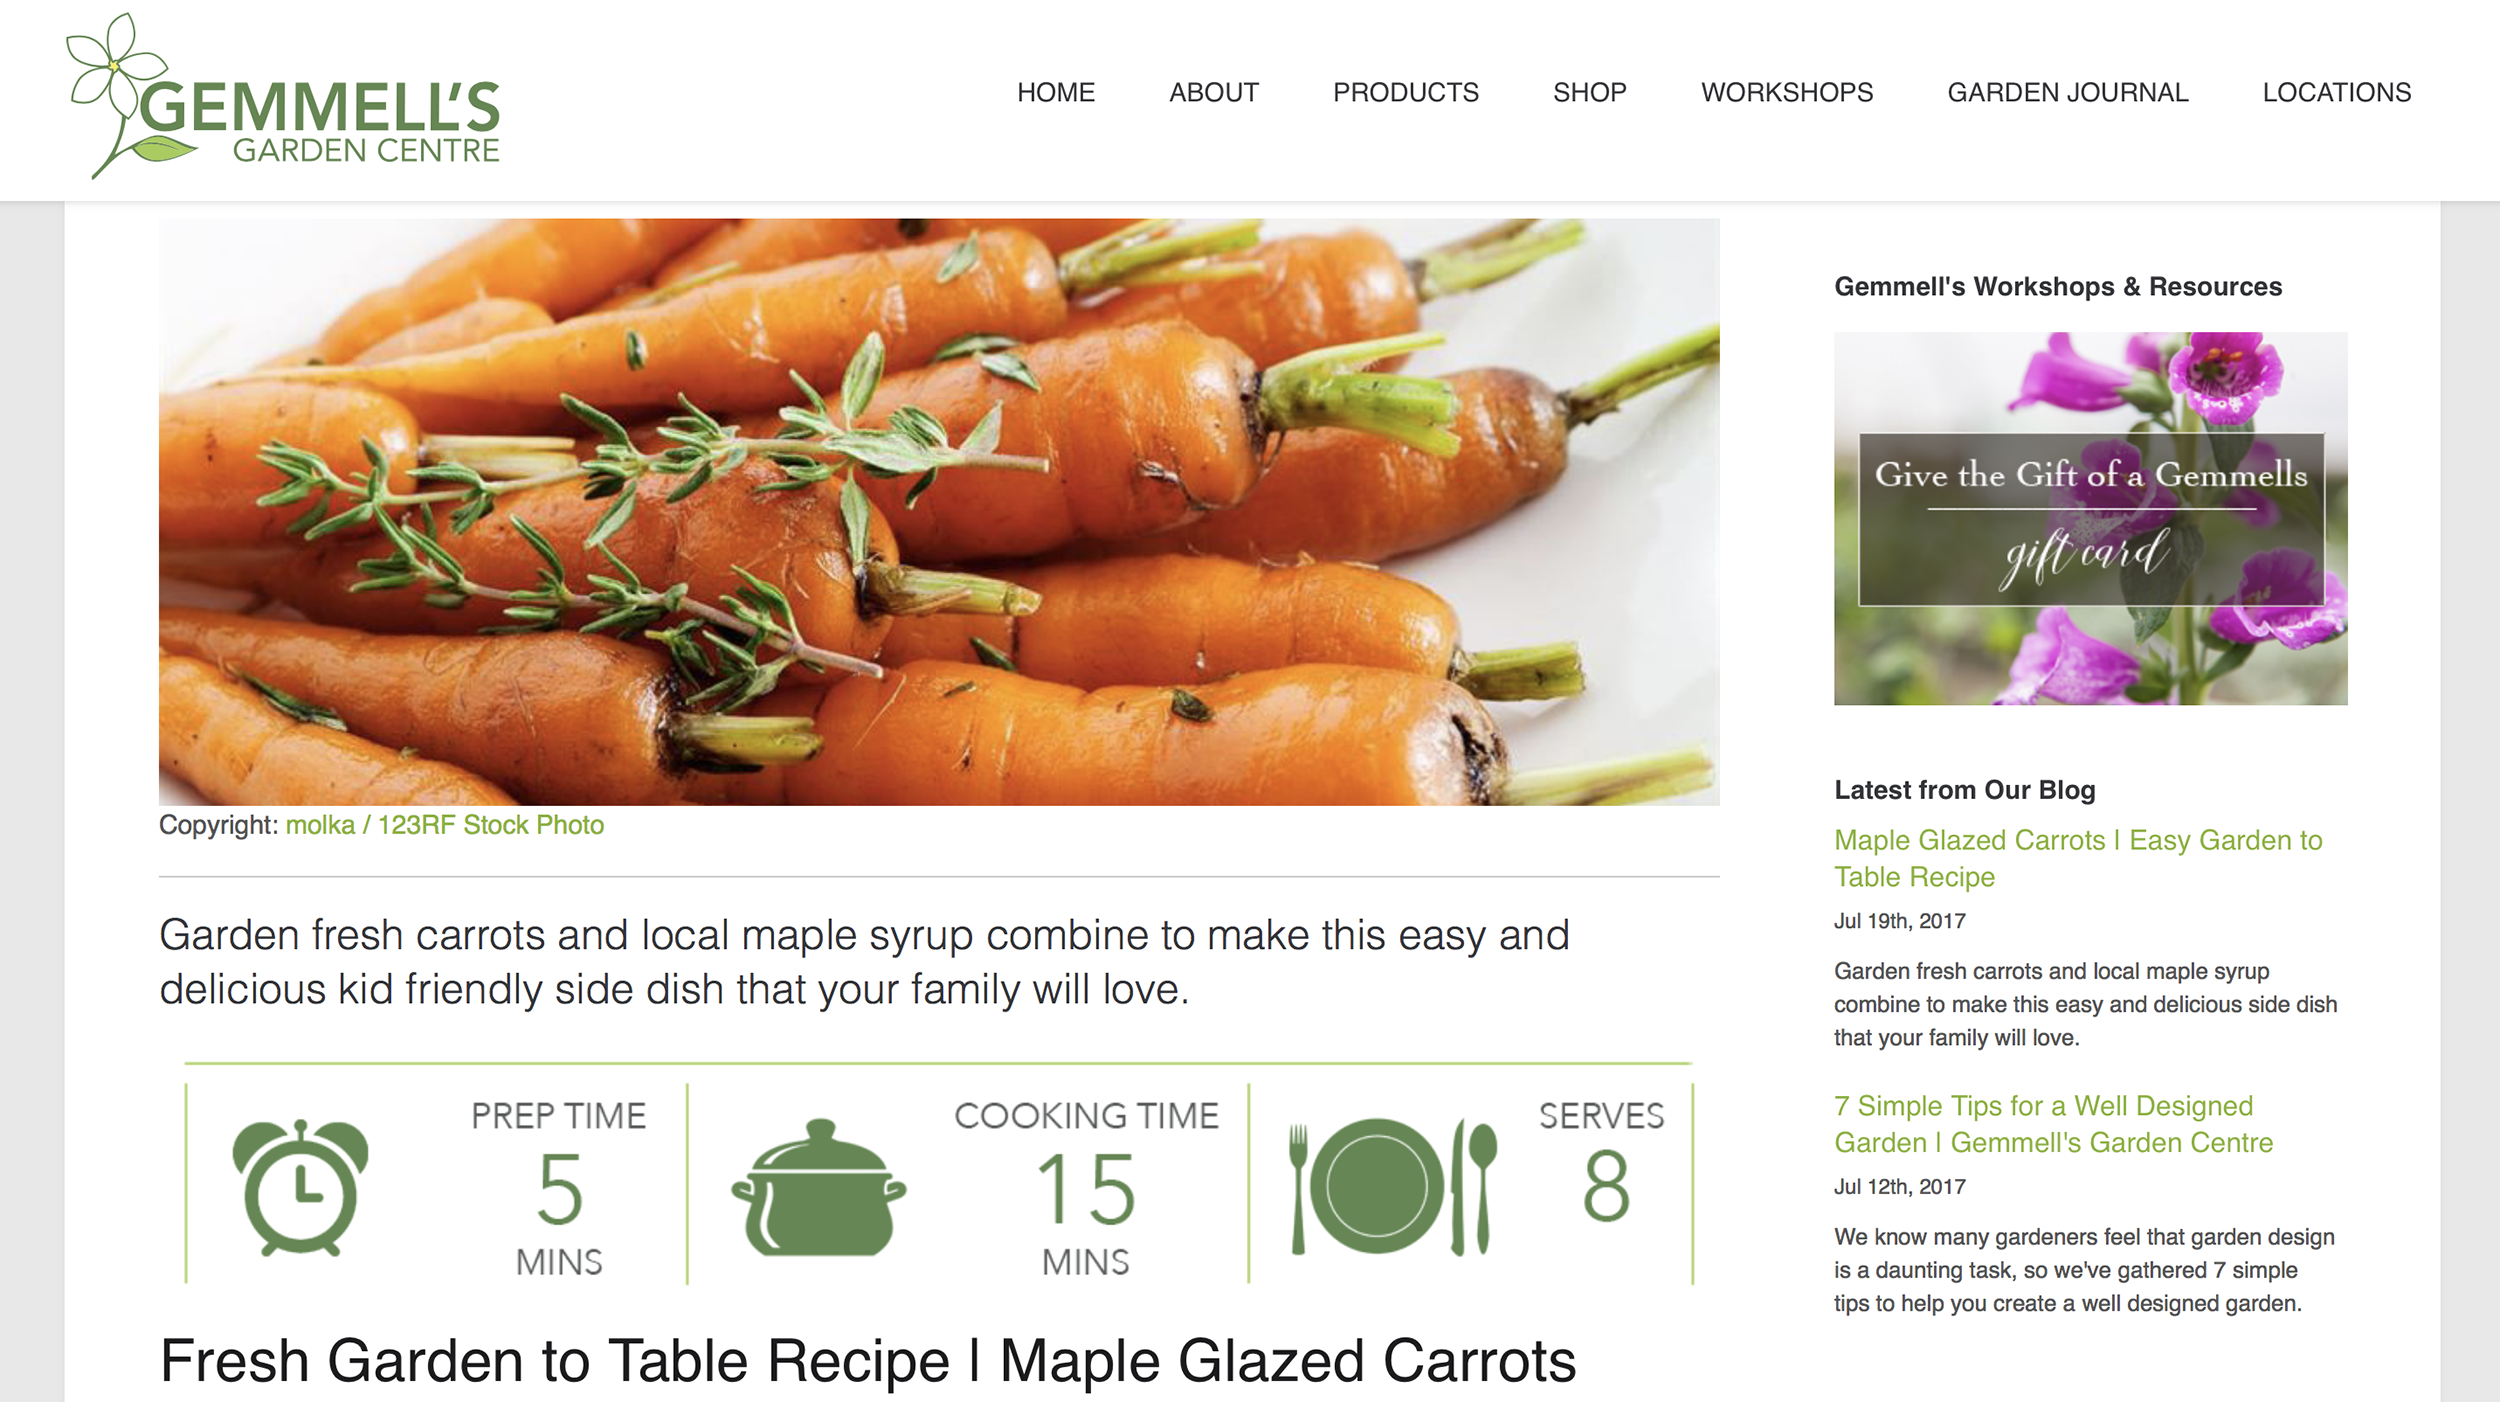 Image Depicts Graphic Design & Content Marketing Created for  Gemmell's Garden Centre  Blog. Platform: Tymbrel